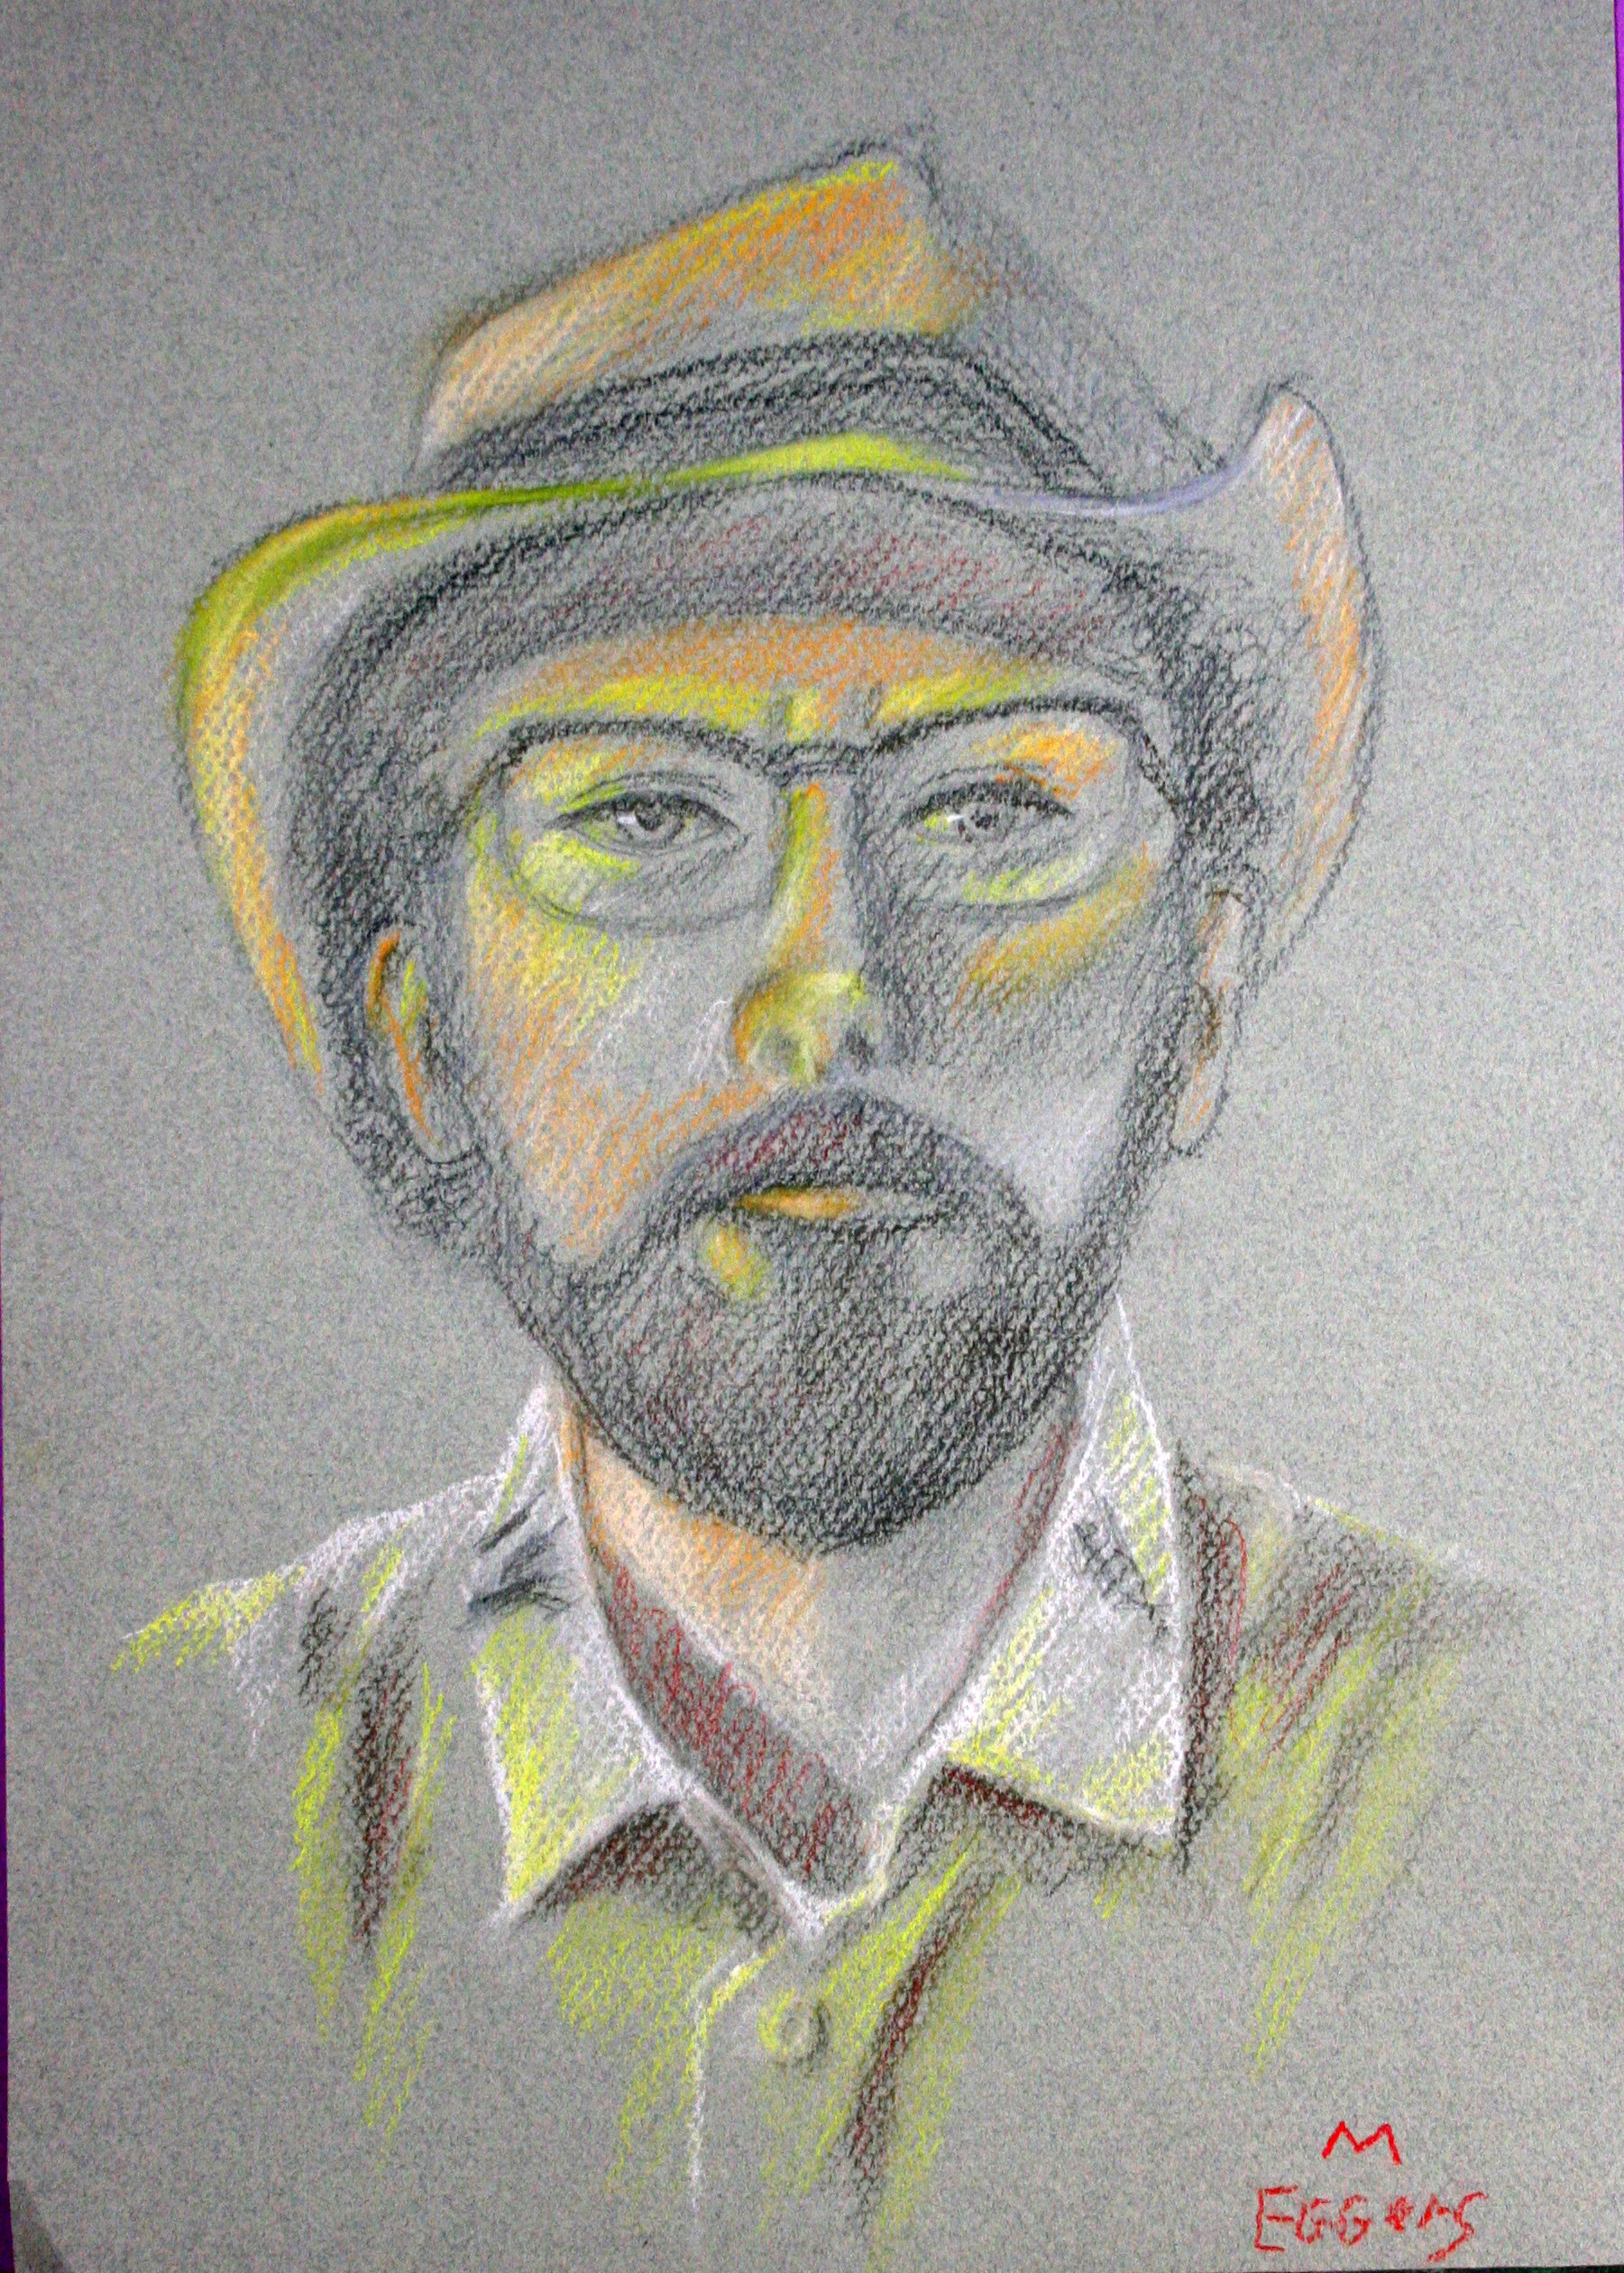 Bob Eggers did this pastel drawing.